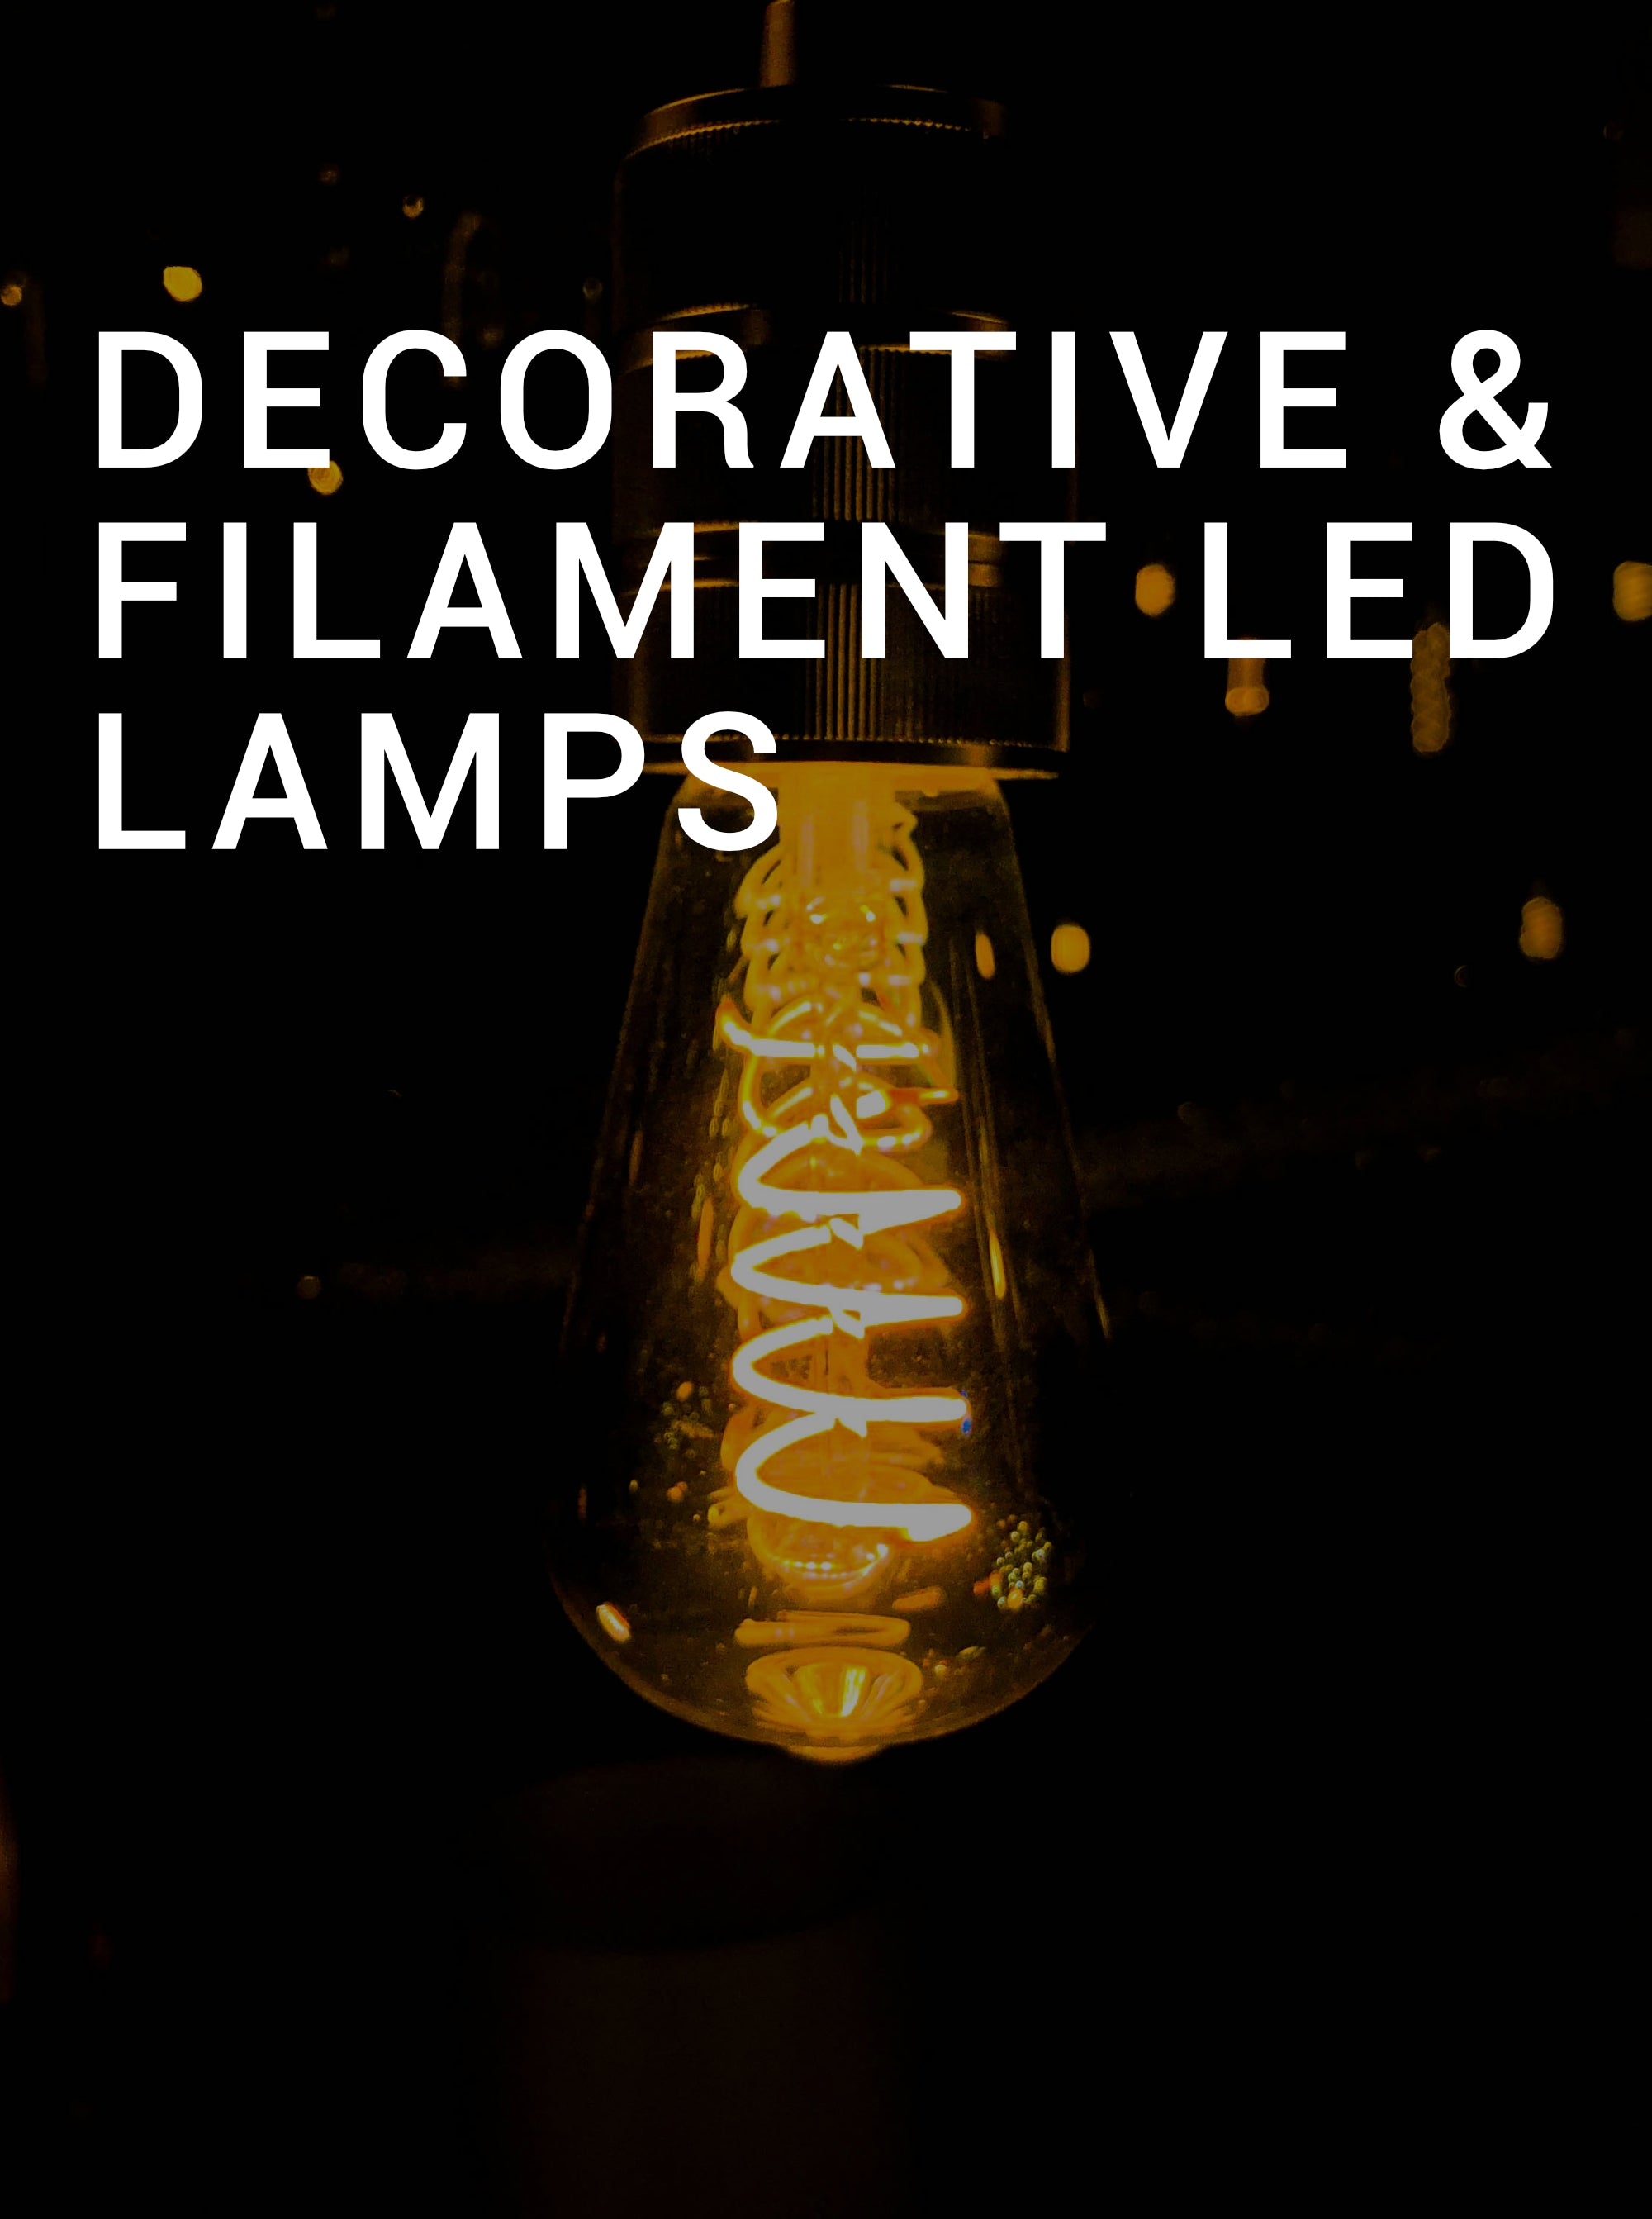 Decorative & Filament